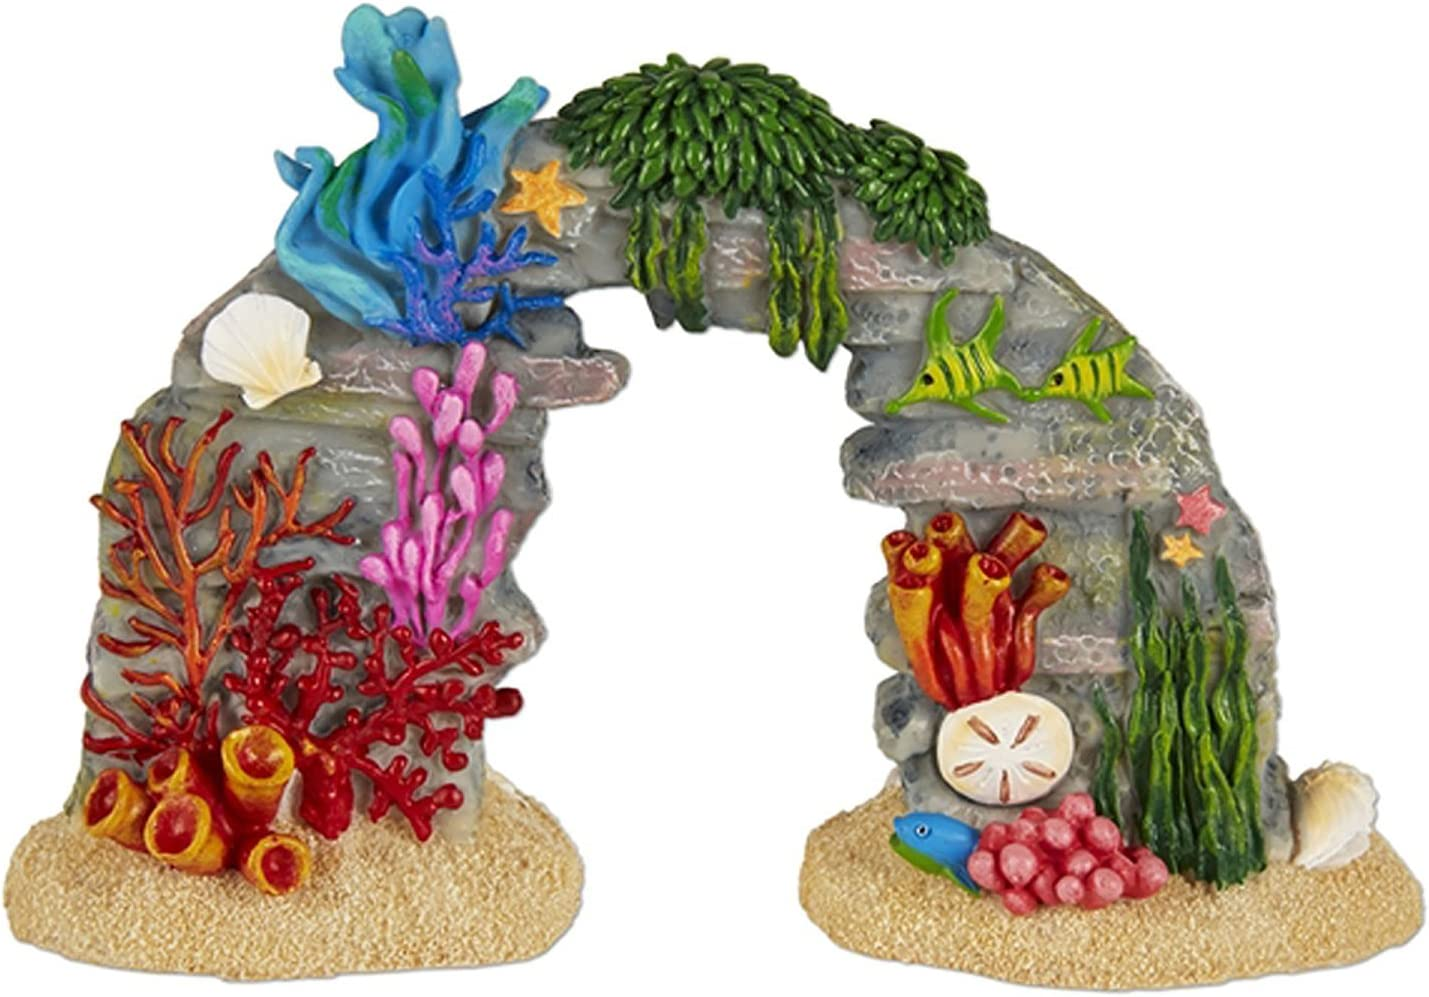 Miniature Fairy Garden Coral Reef with Sea Life